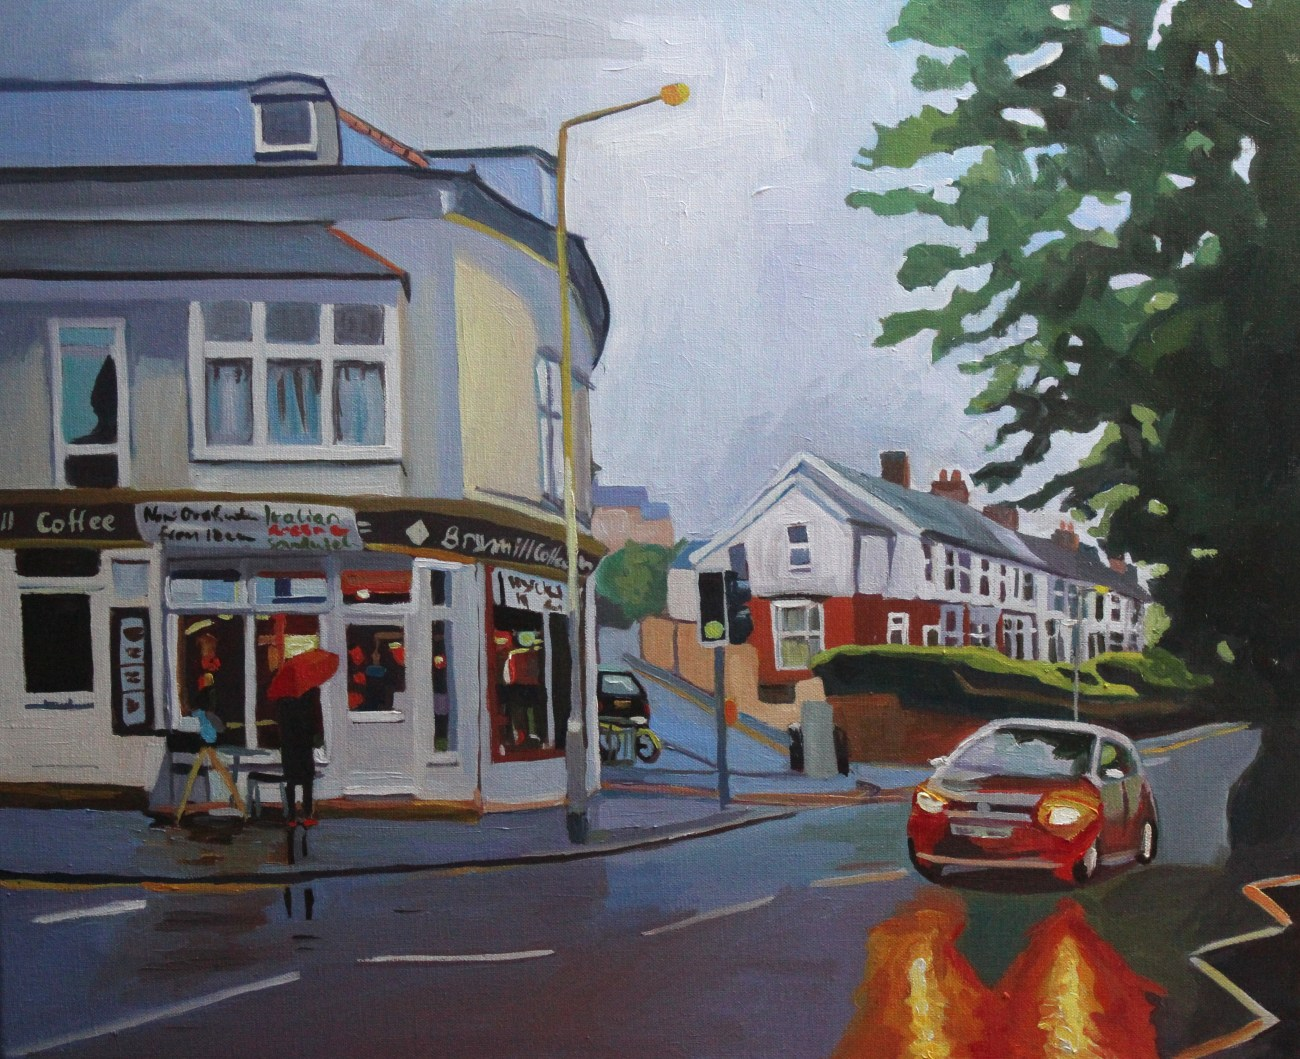 Summer Rain - Brynmill Coffee House in evening rain 60x50cm